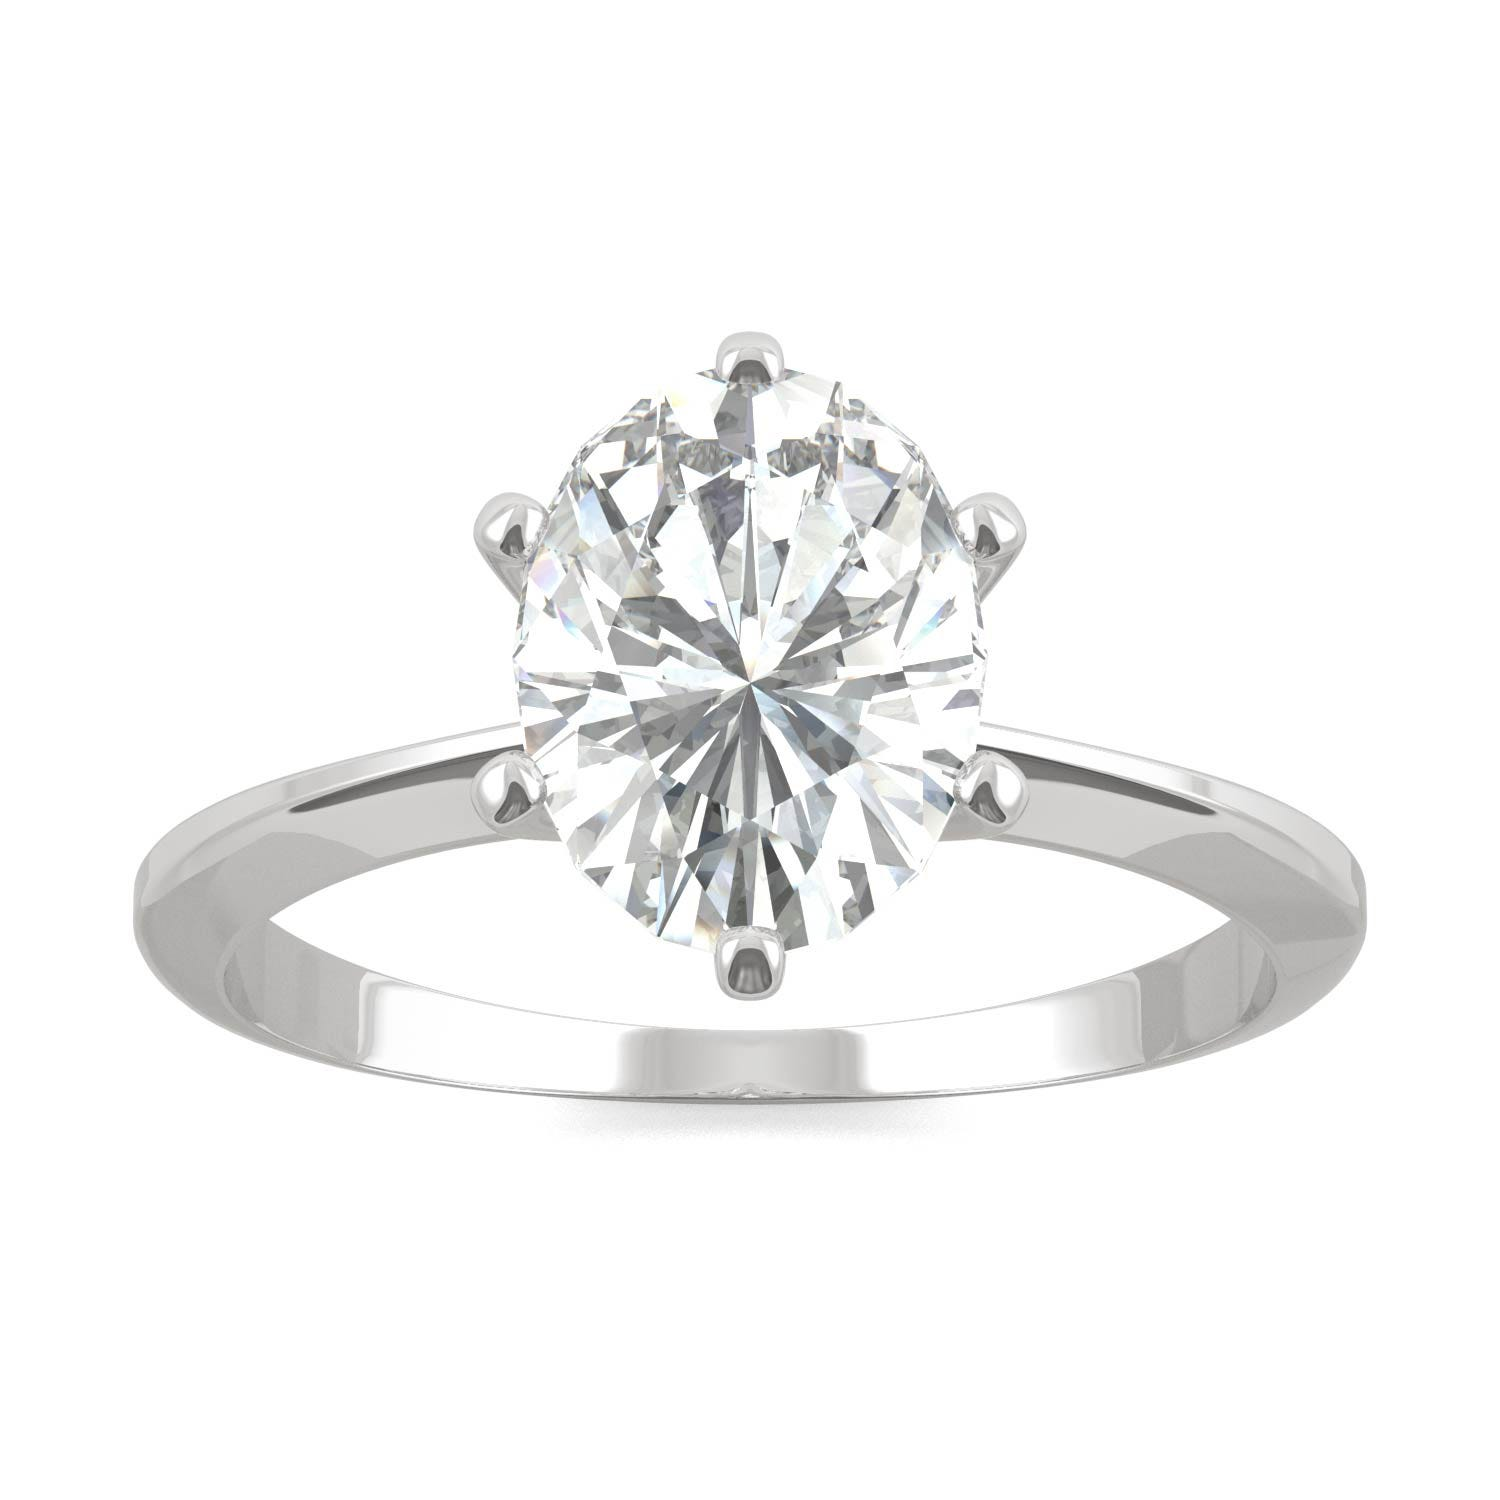 Six Prong Solitaire Engagement Ring in 14K White Gold, Size: 6, 2.10CTW Oval Forever One - Near-Colorless Moissanite Charles & Colvard